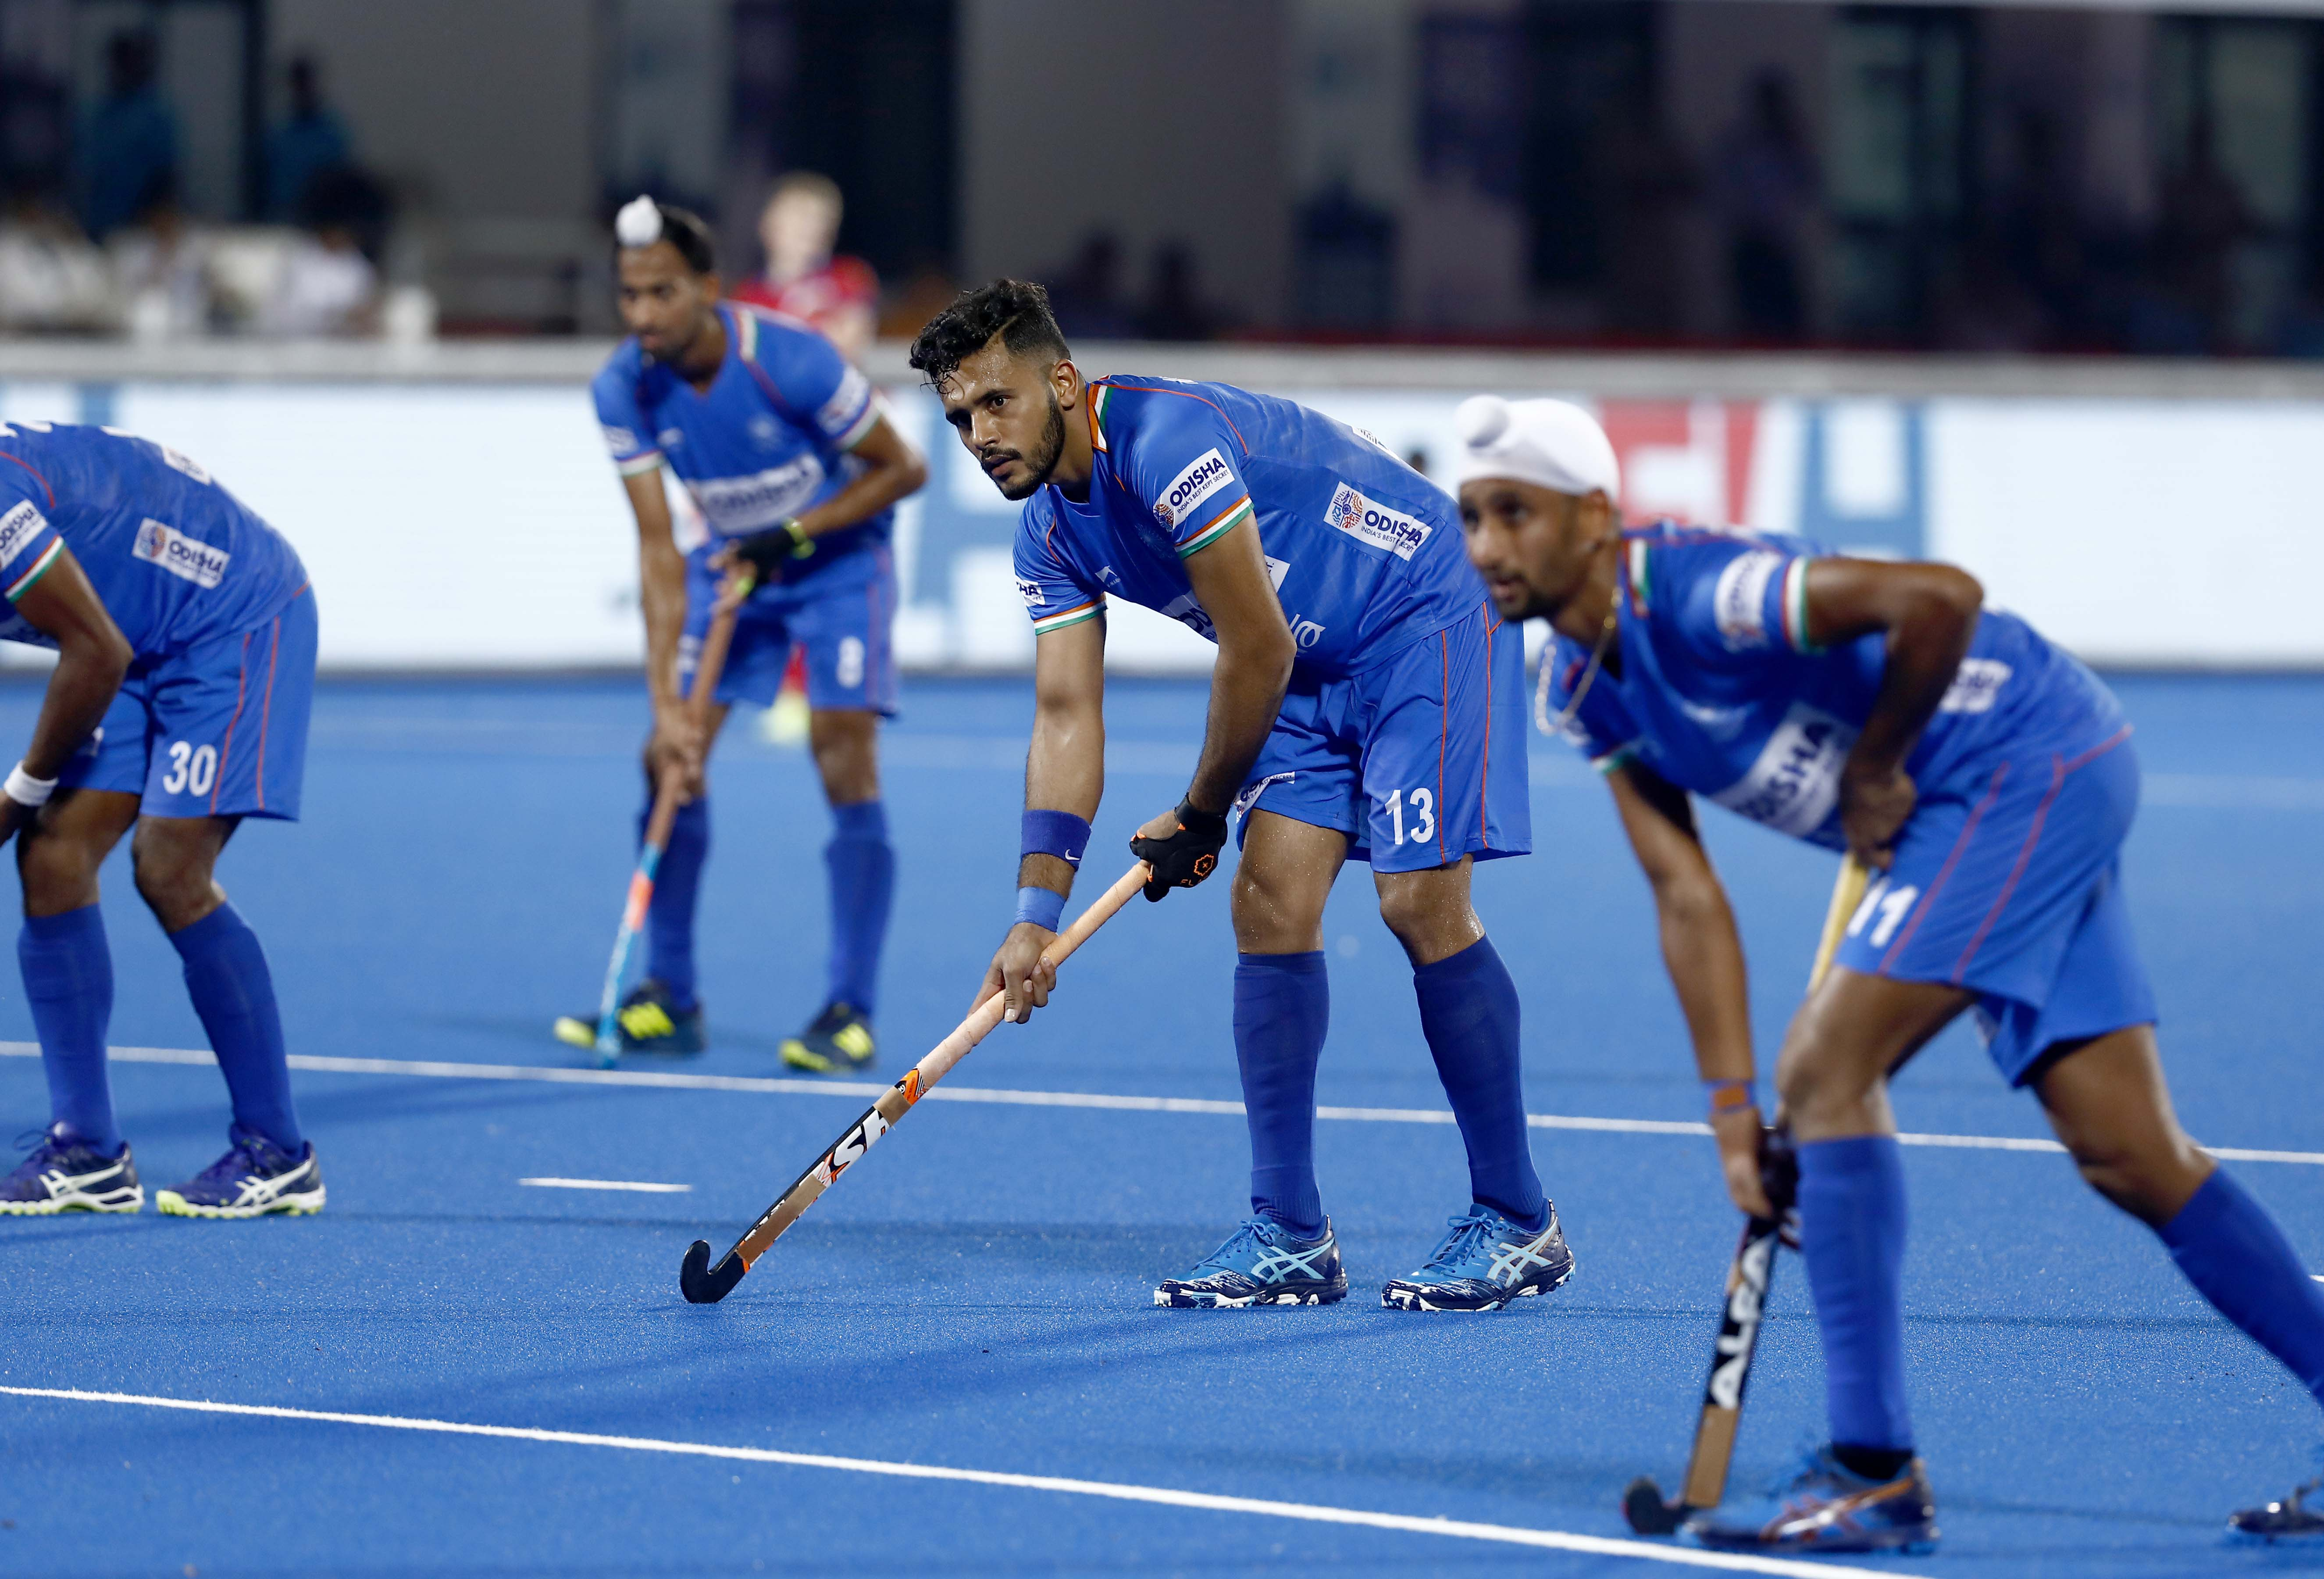 Indian Men's Hockey Team lose 1-2 to New Zealand in 2nd match of Olympic Test Event